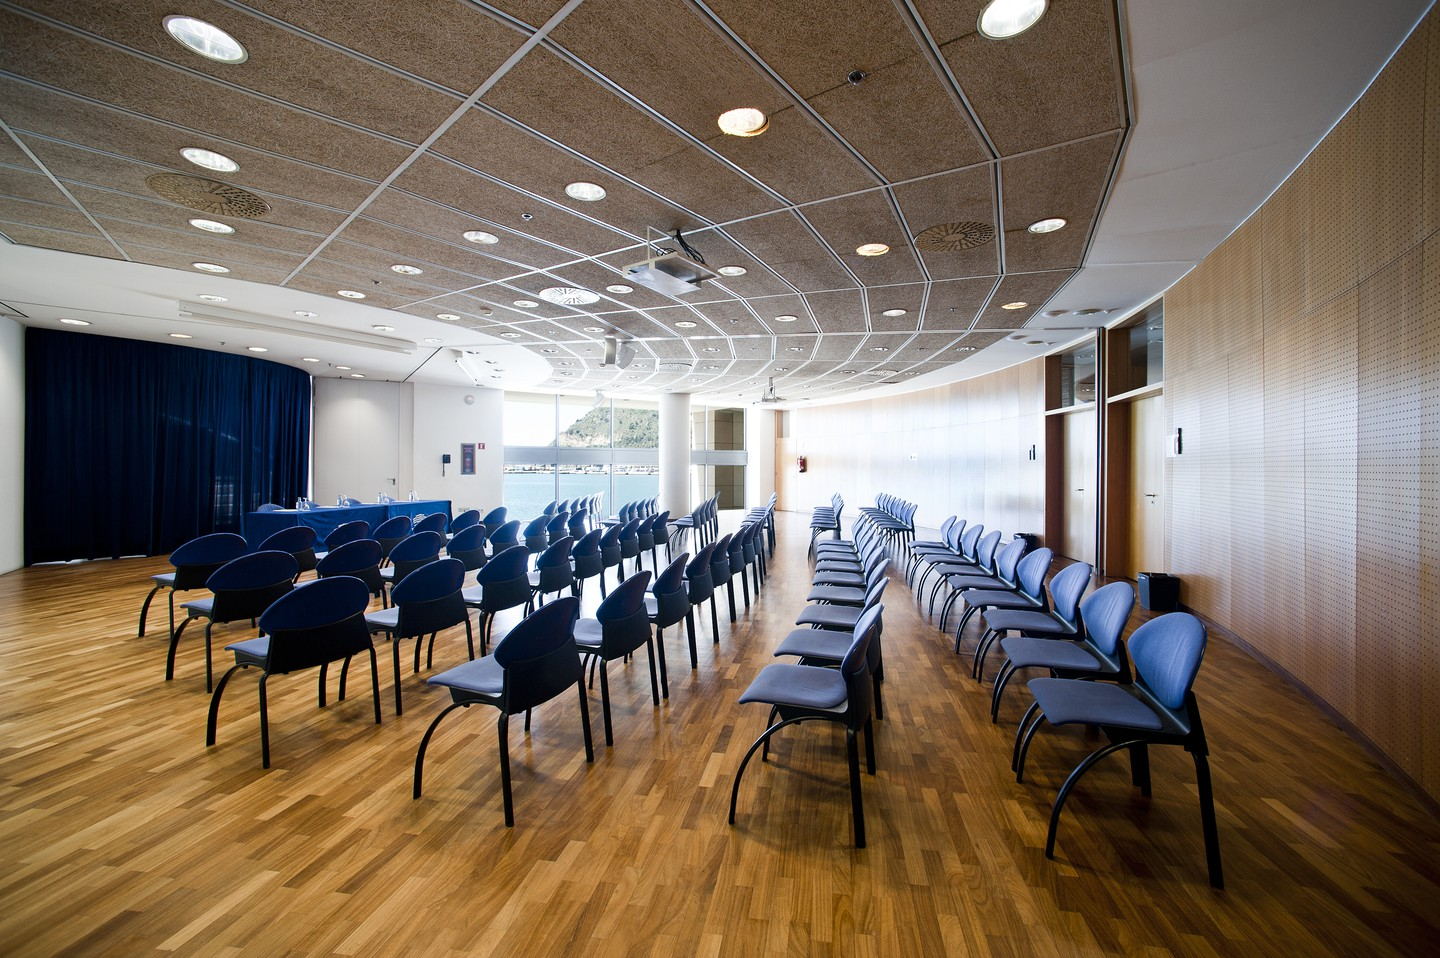 Barcelona training rooms Meetingraum A Rooms (4 rooms) image 4